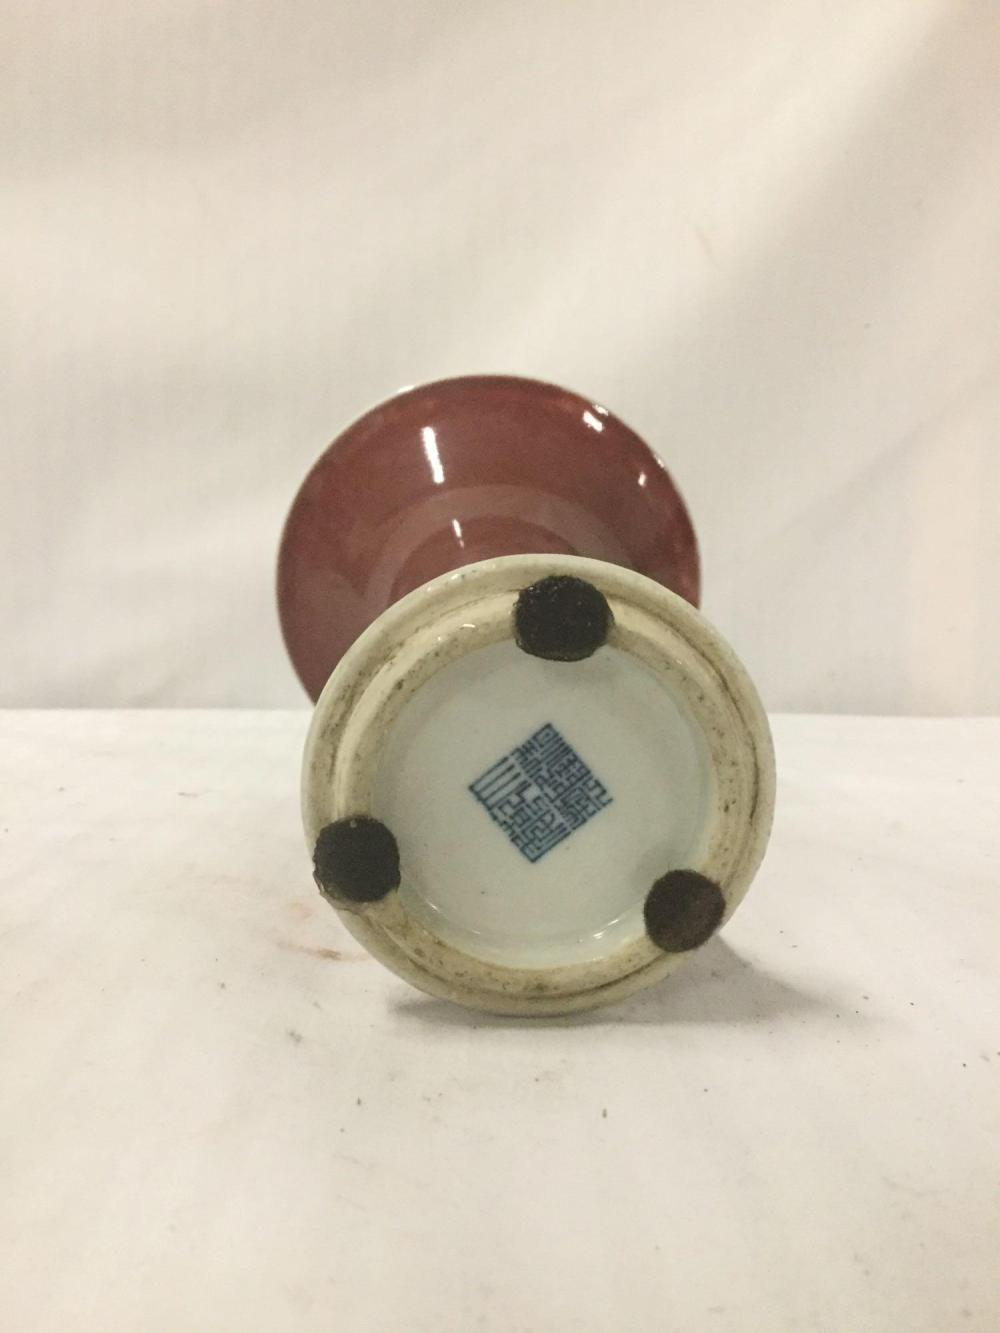 Lot 144: Oxblood Porcelain gu-Style vase with Apocryphal Qinlong Seal on the underside